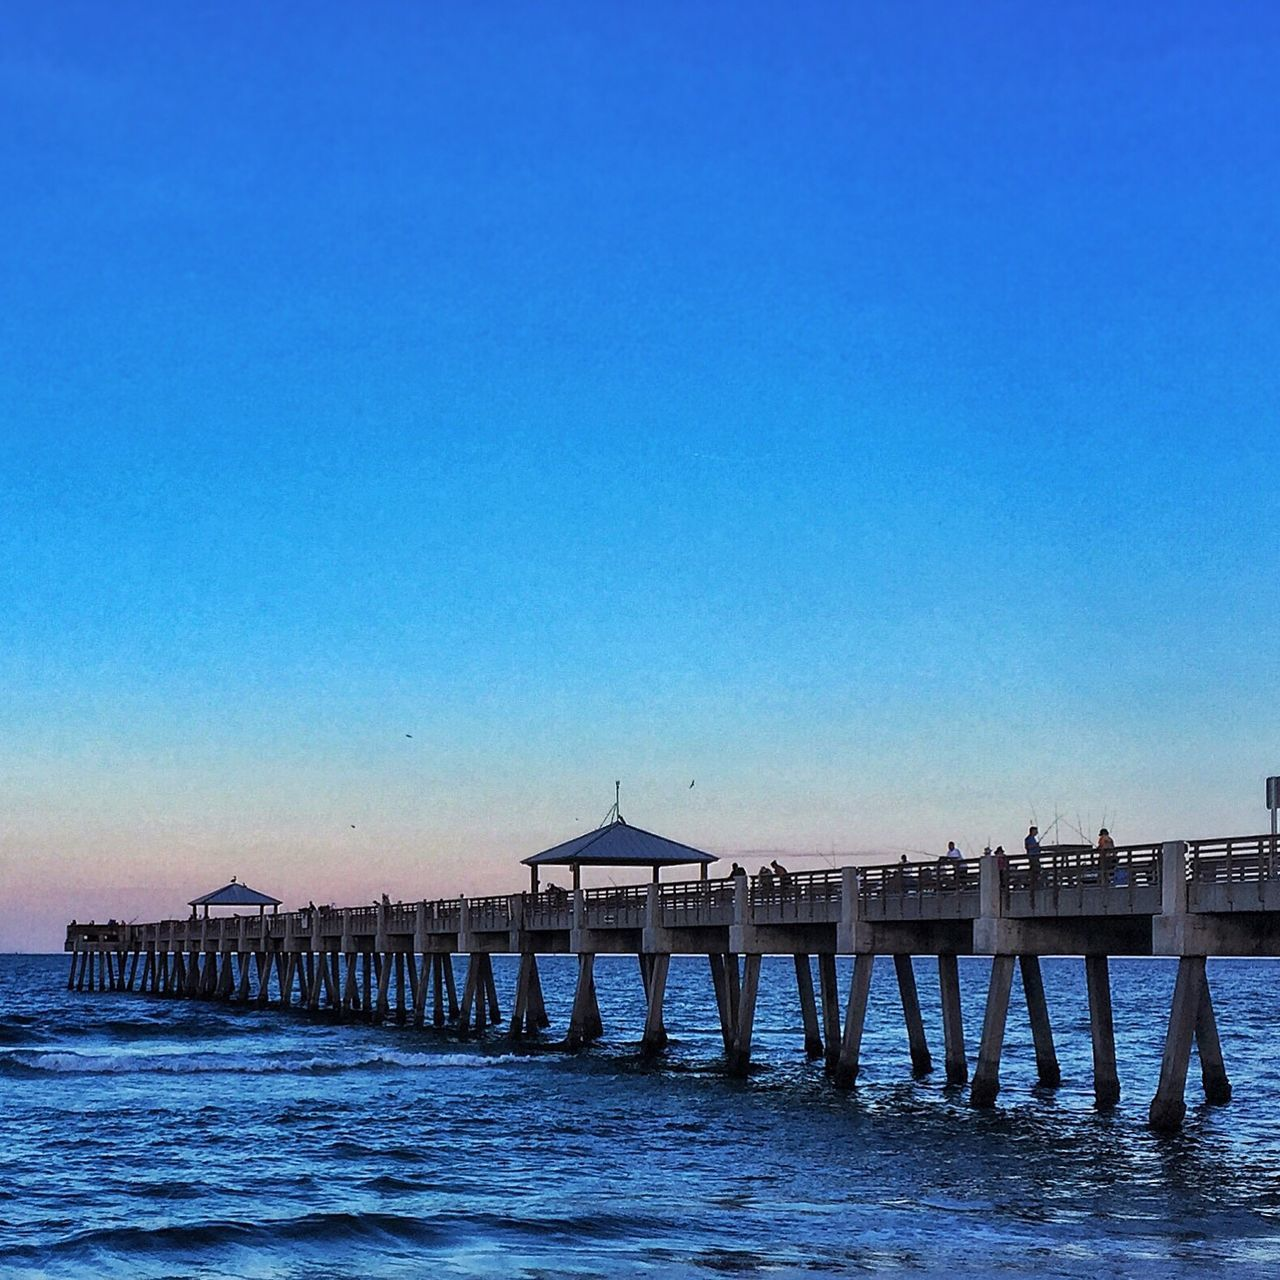 architecture, built structure, water, blue, pier, copy space, sea, outdoors, connection, clear sky, waterfront, no people, beach, building exterior, day, nature, sky, scenics, beauty in nature